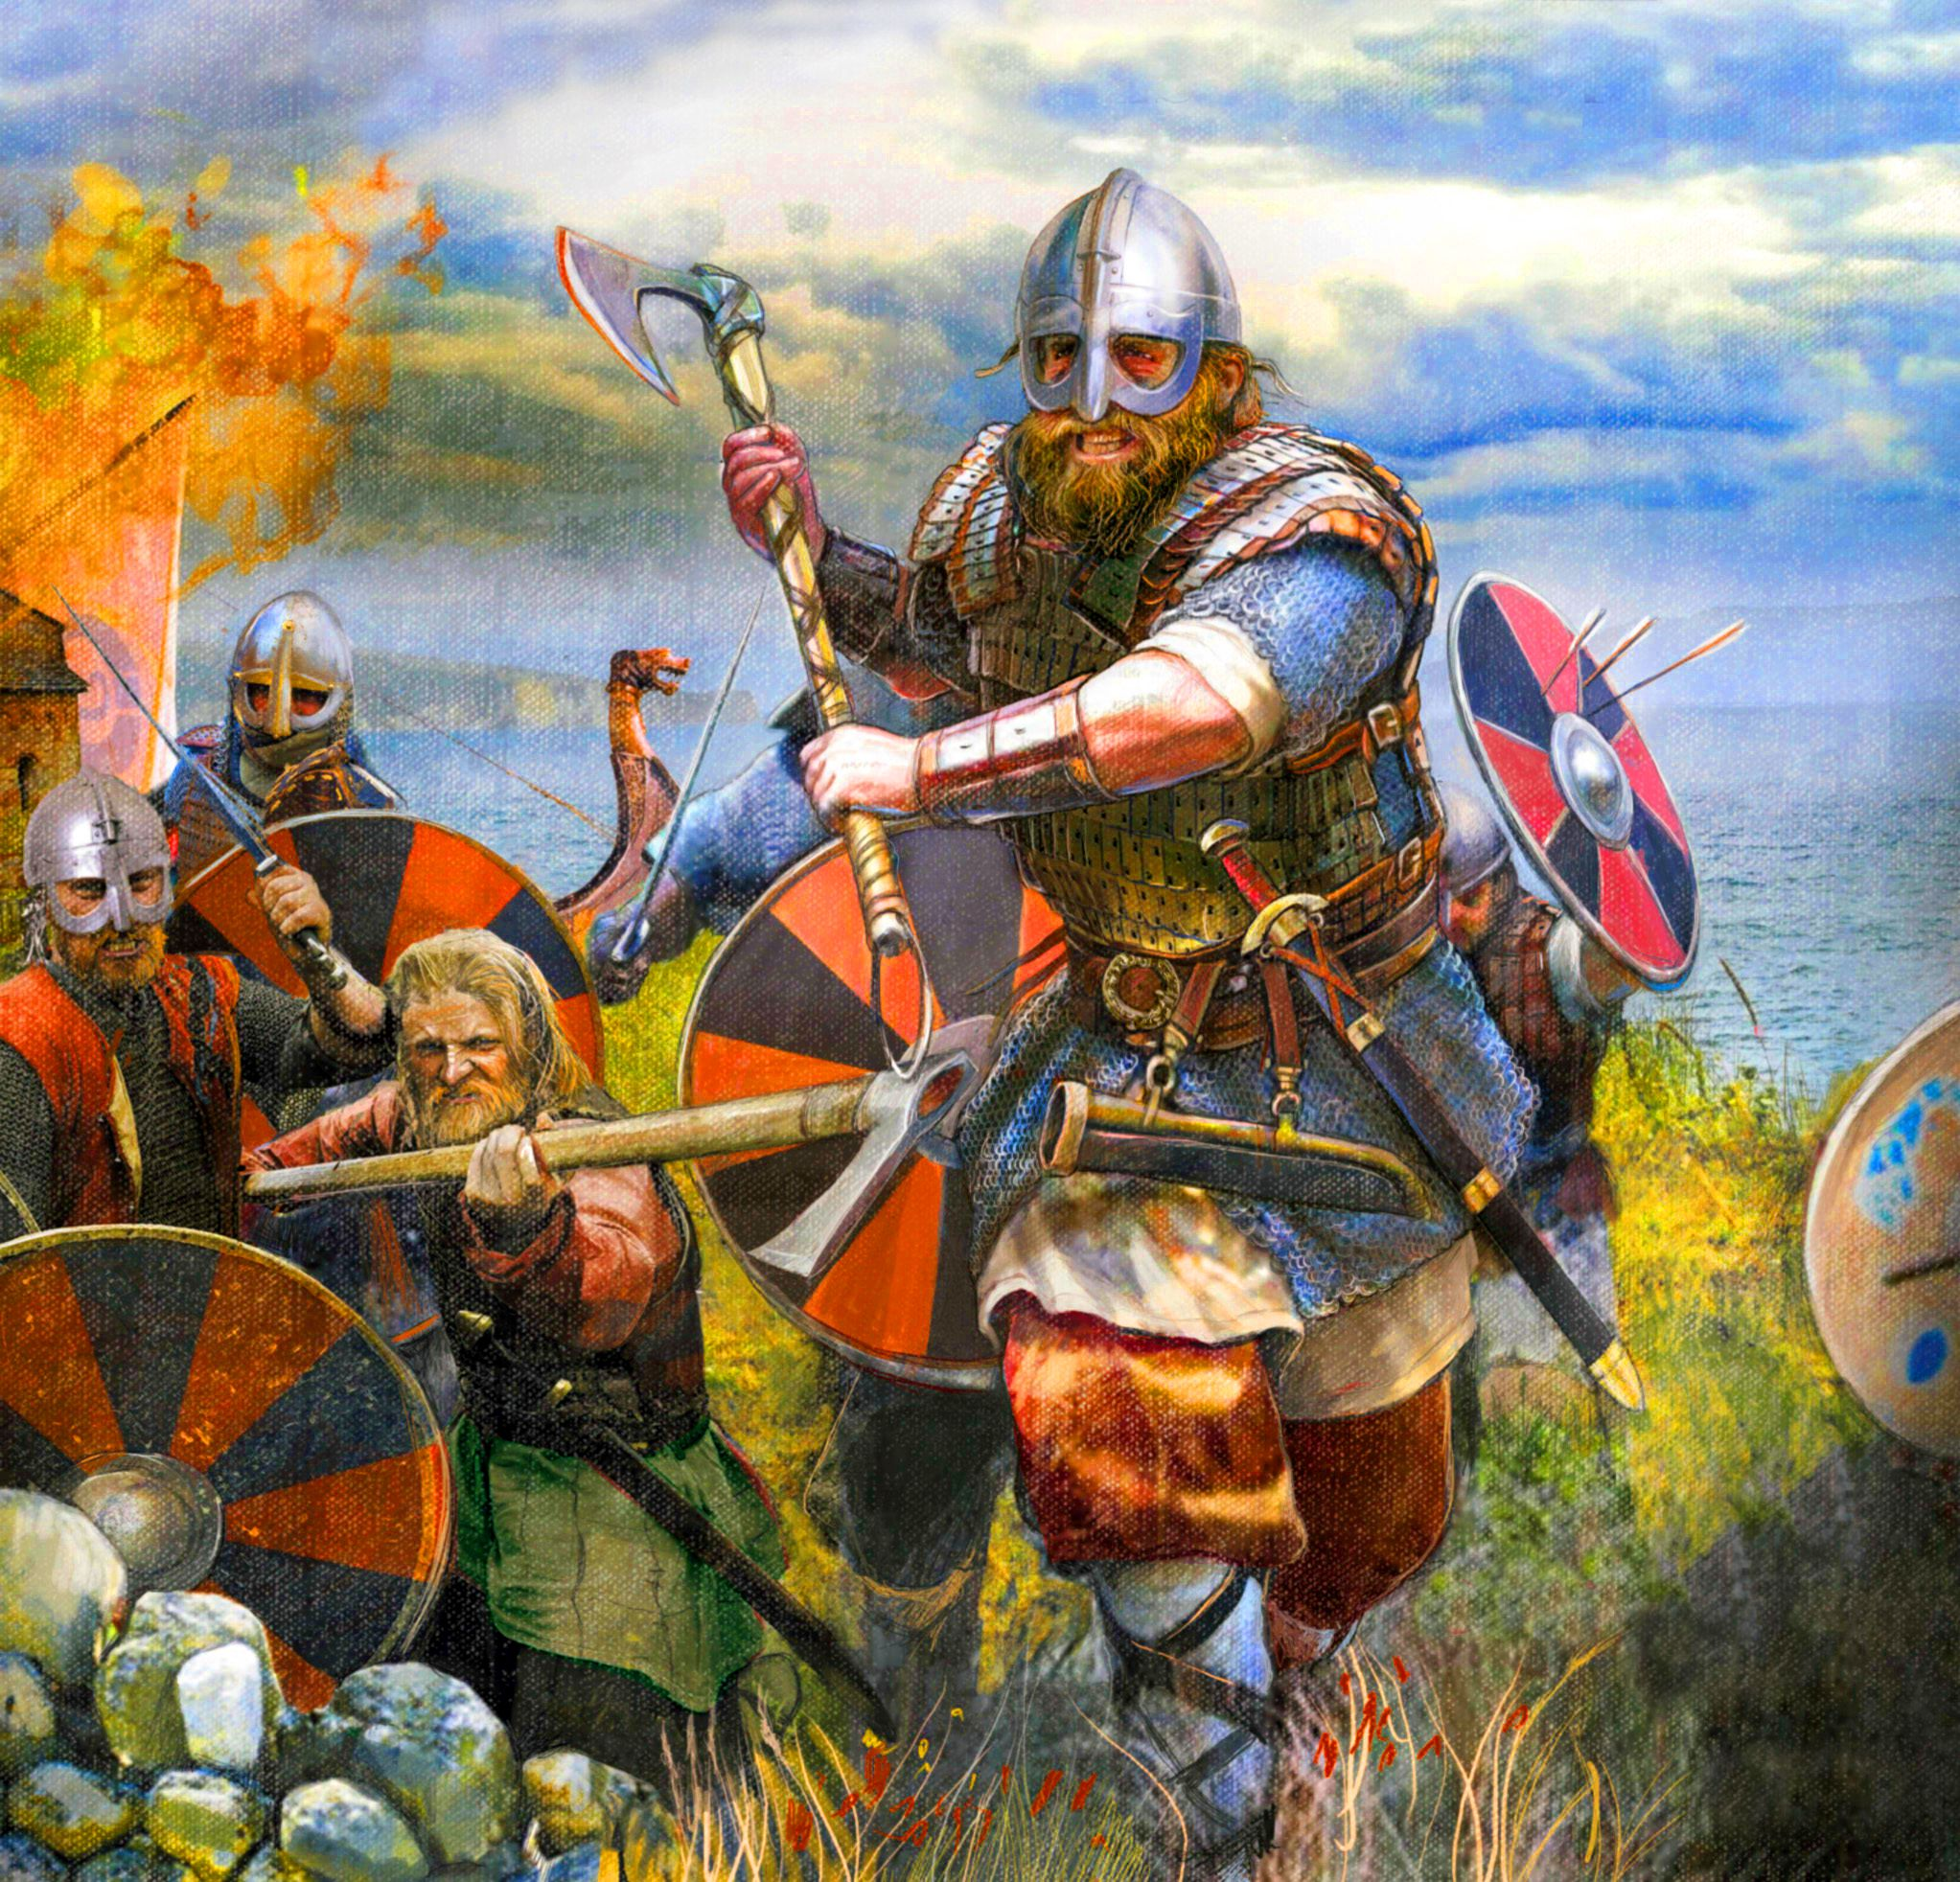 Image of Viking raiders